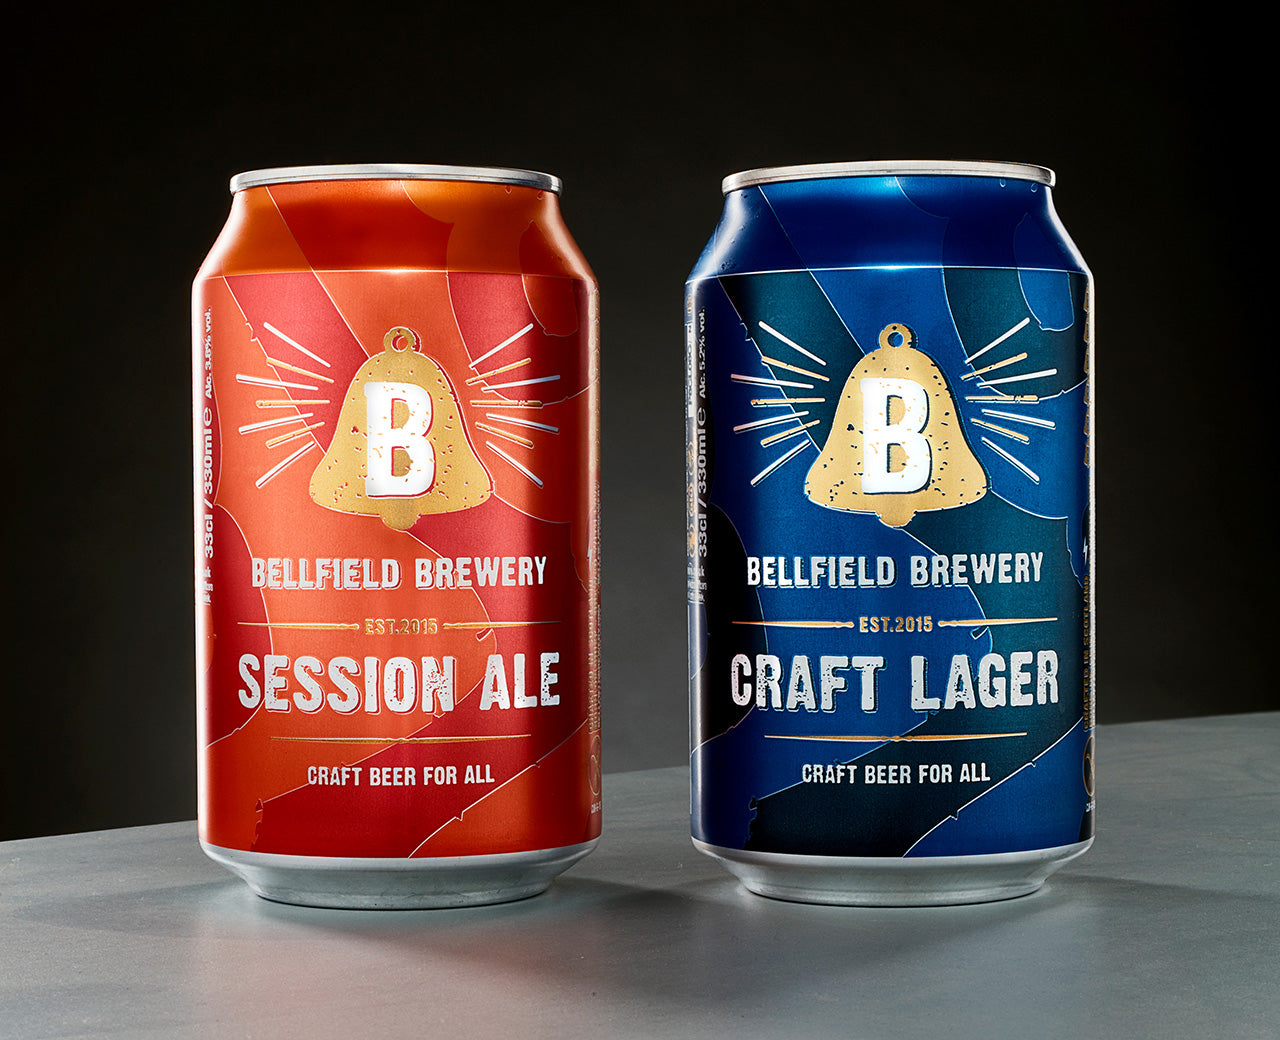 New beers out now in cans: Session Ale and Craft Lager